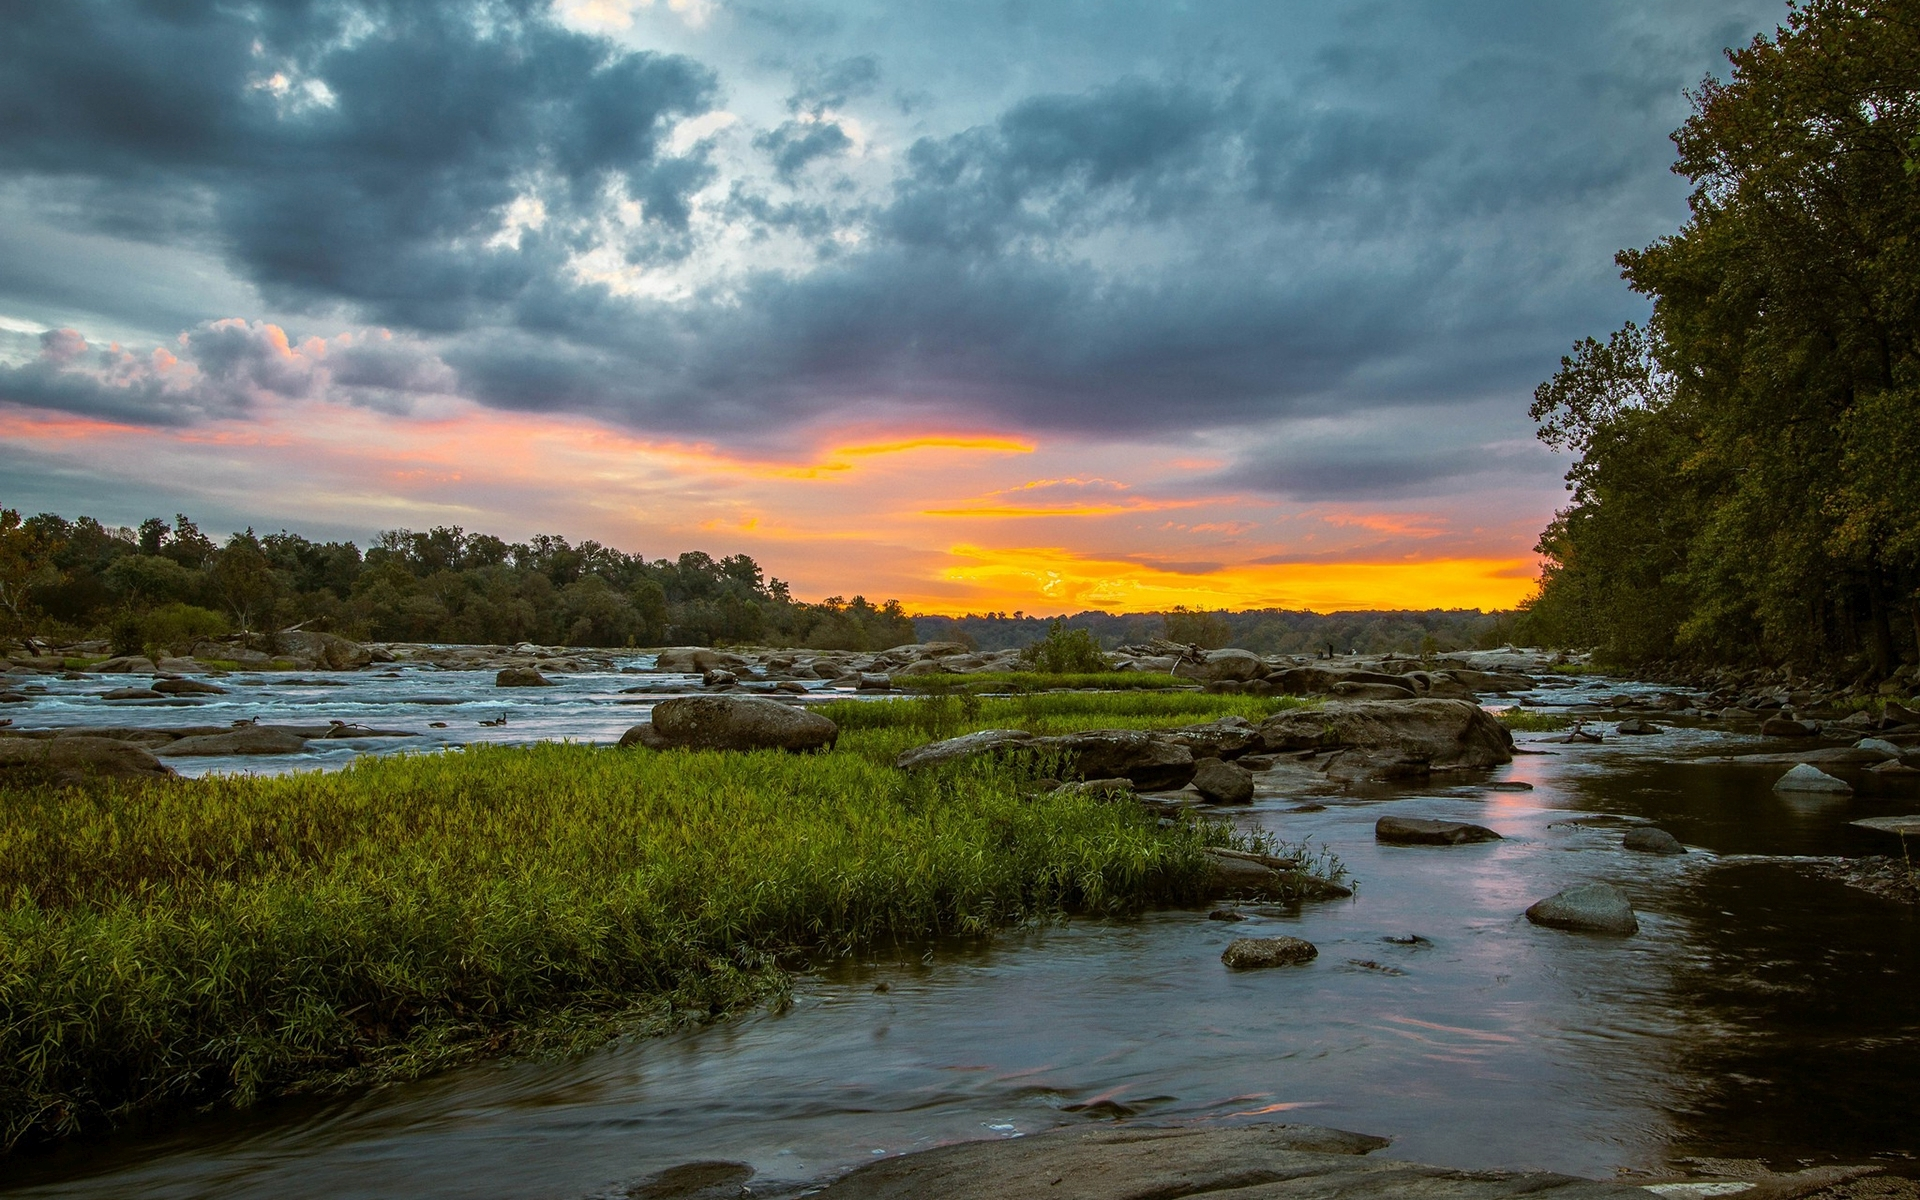 Animated Waterfall Wallpapers For Mobile River Grass Rocks Trees Sunset Wallpapers River Grass